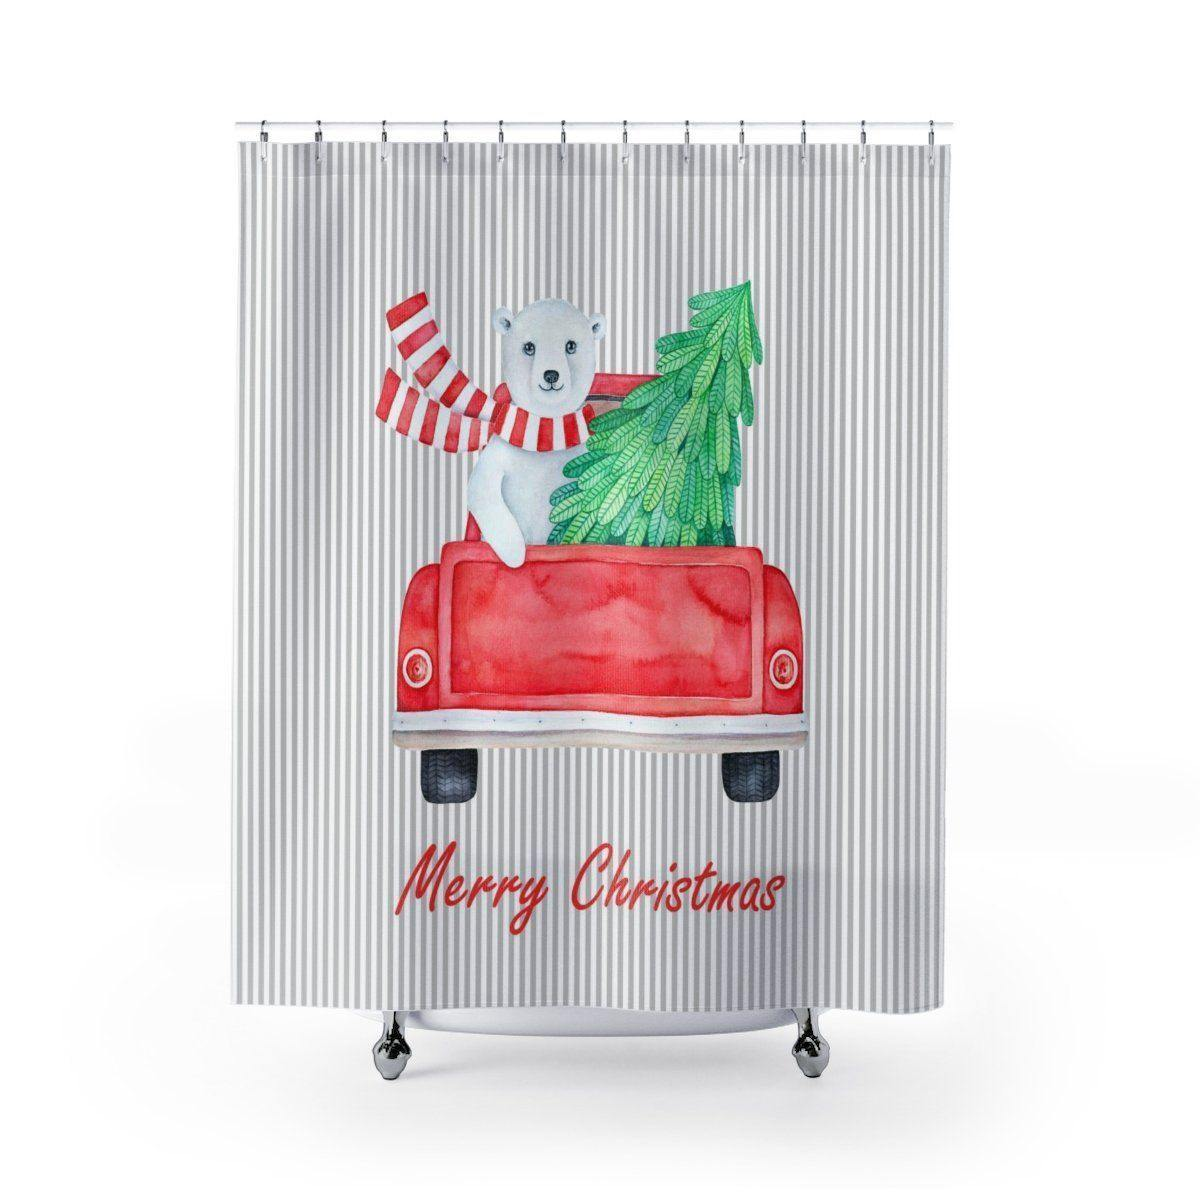 Christmas Car Shower Curtain-W.FRANCIS